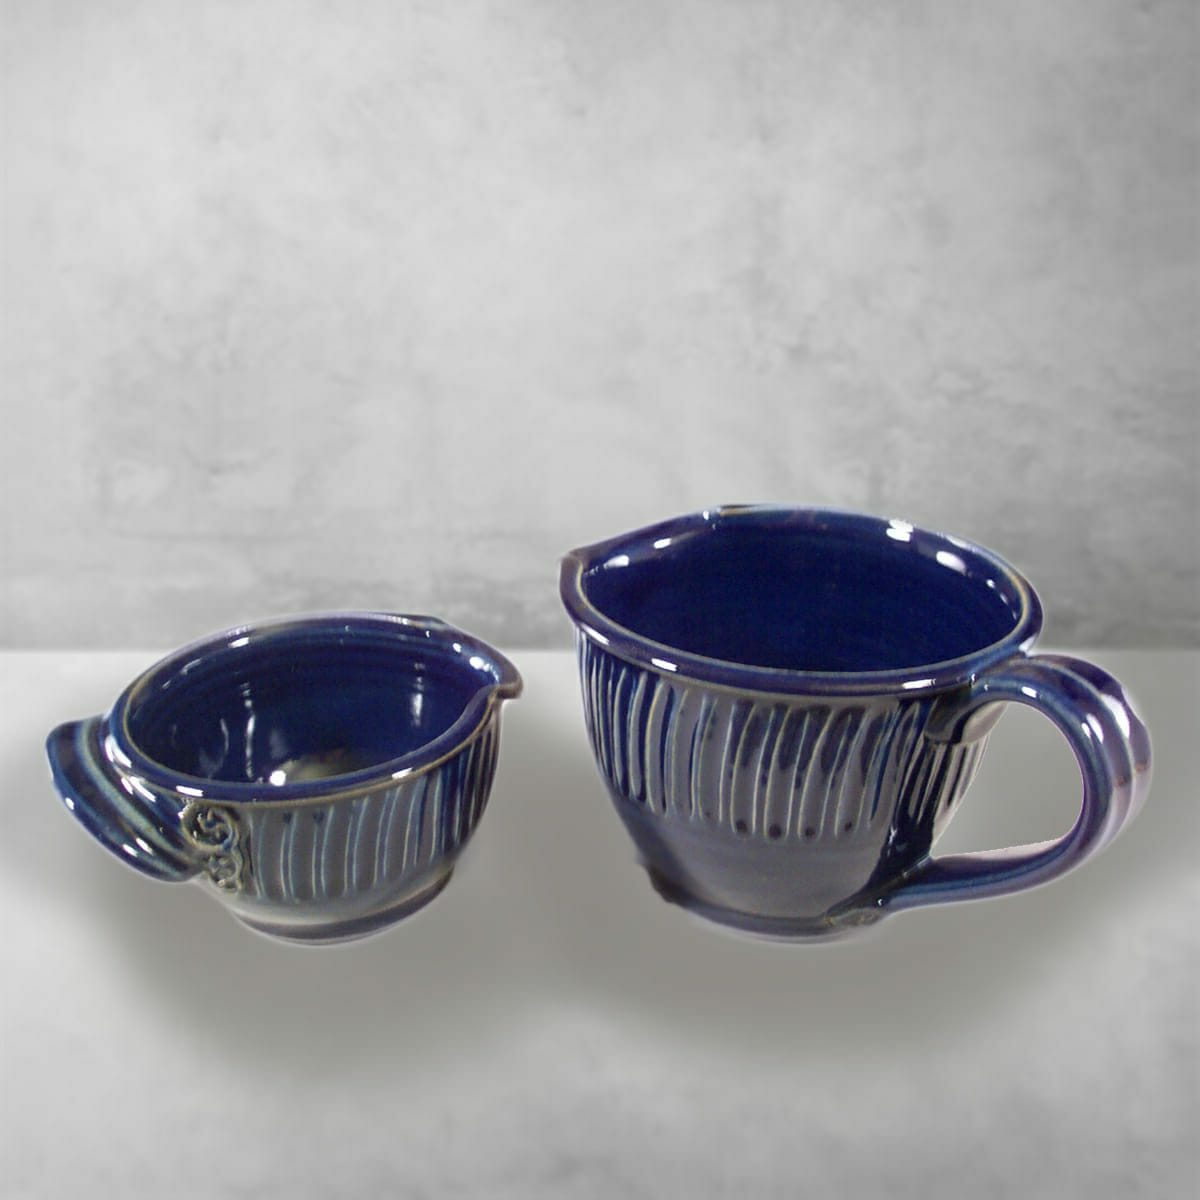 Spouted Bowls with Handles, Small and Large Sizes, Fluted Design in Dark Blue Glaze.